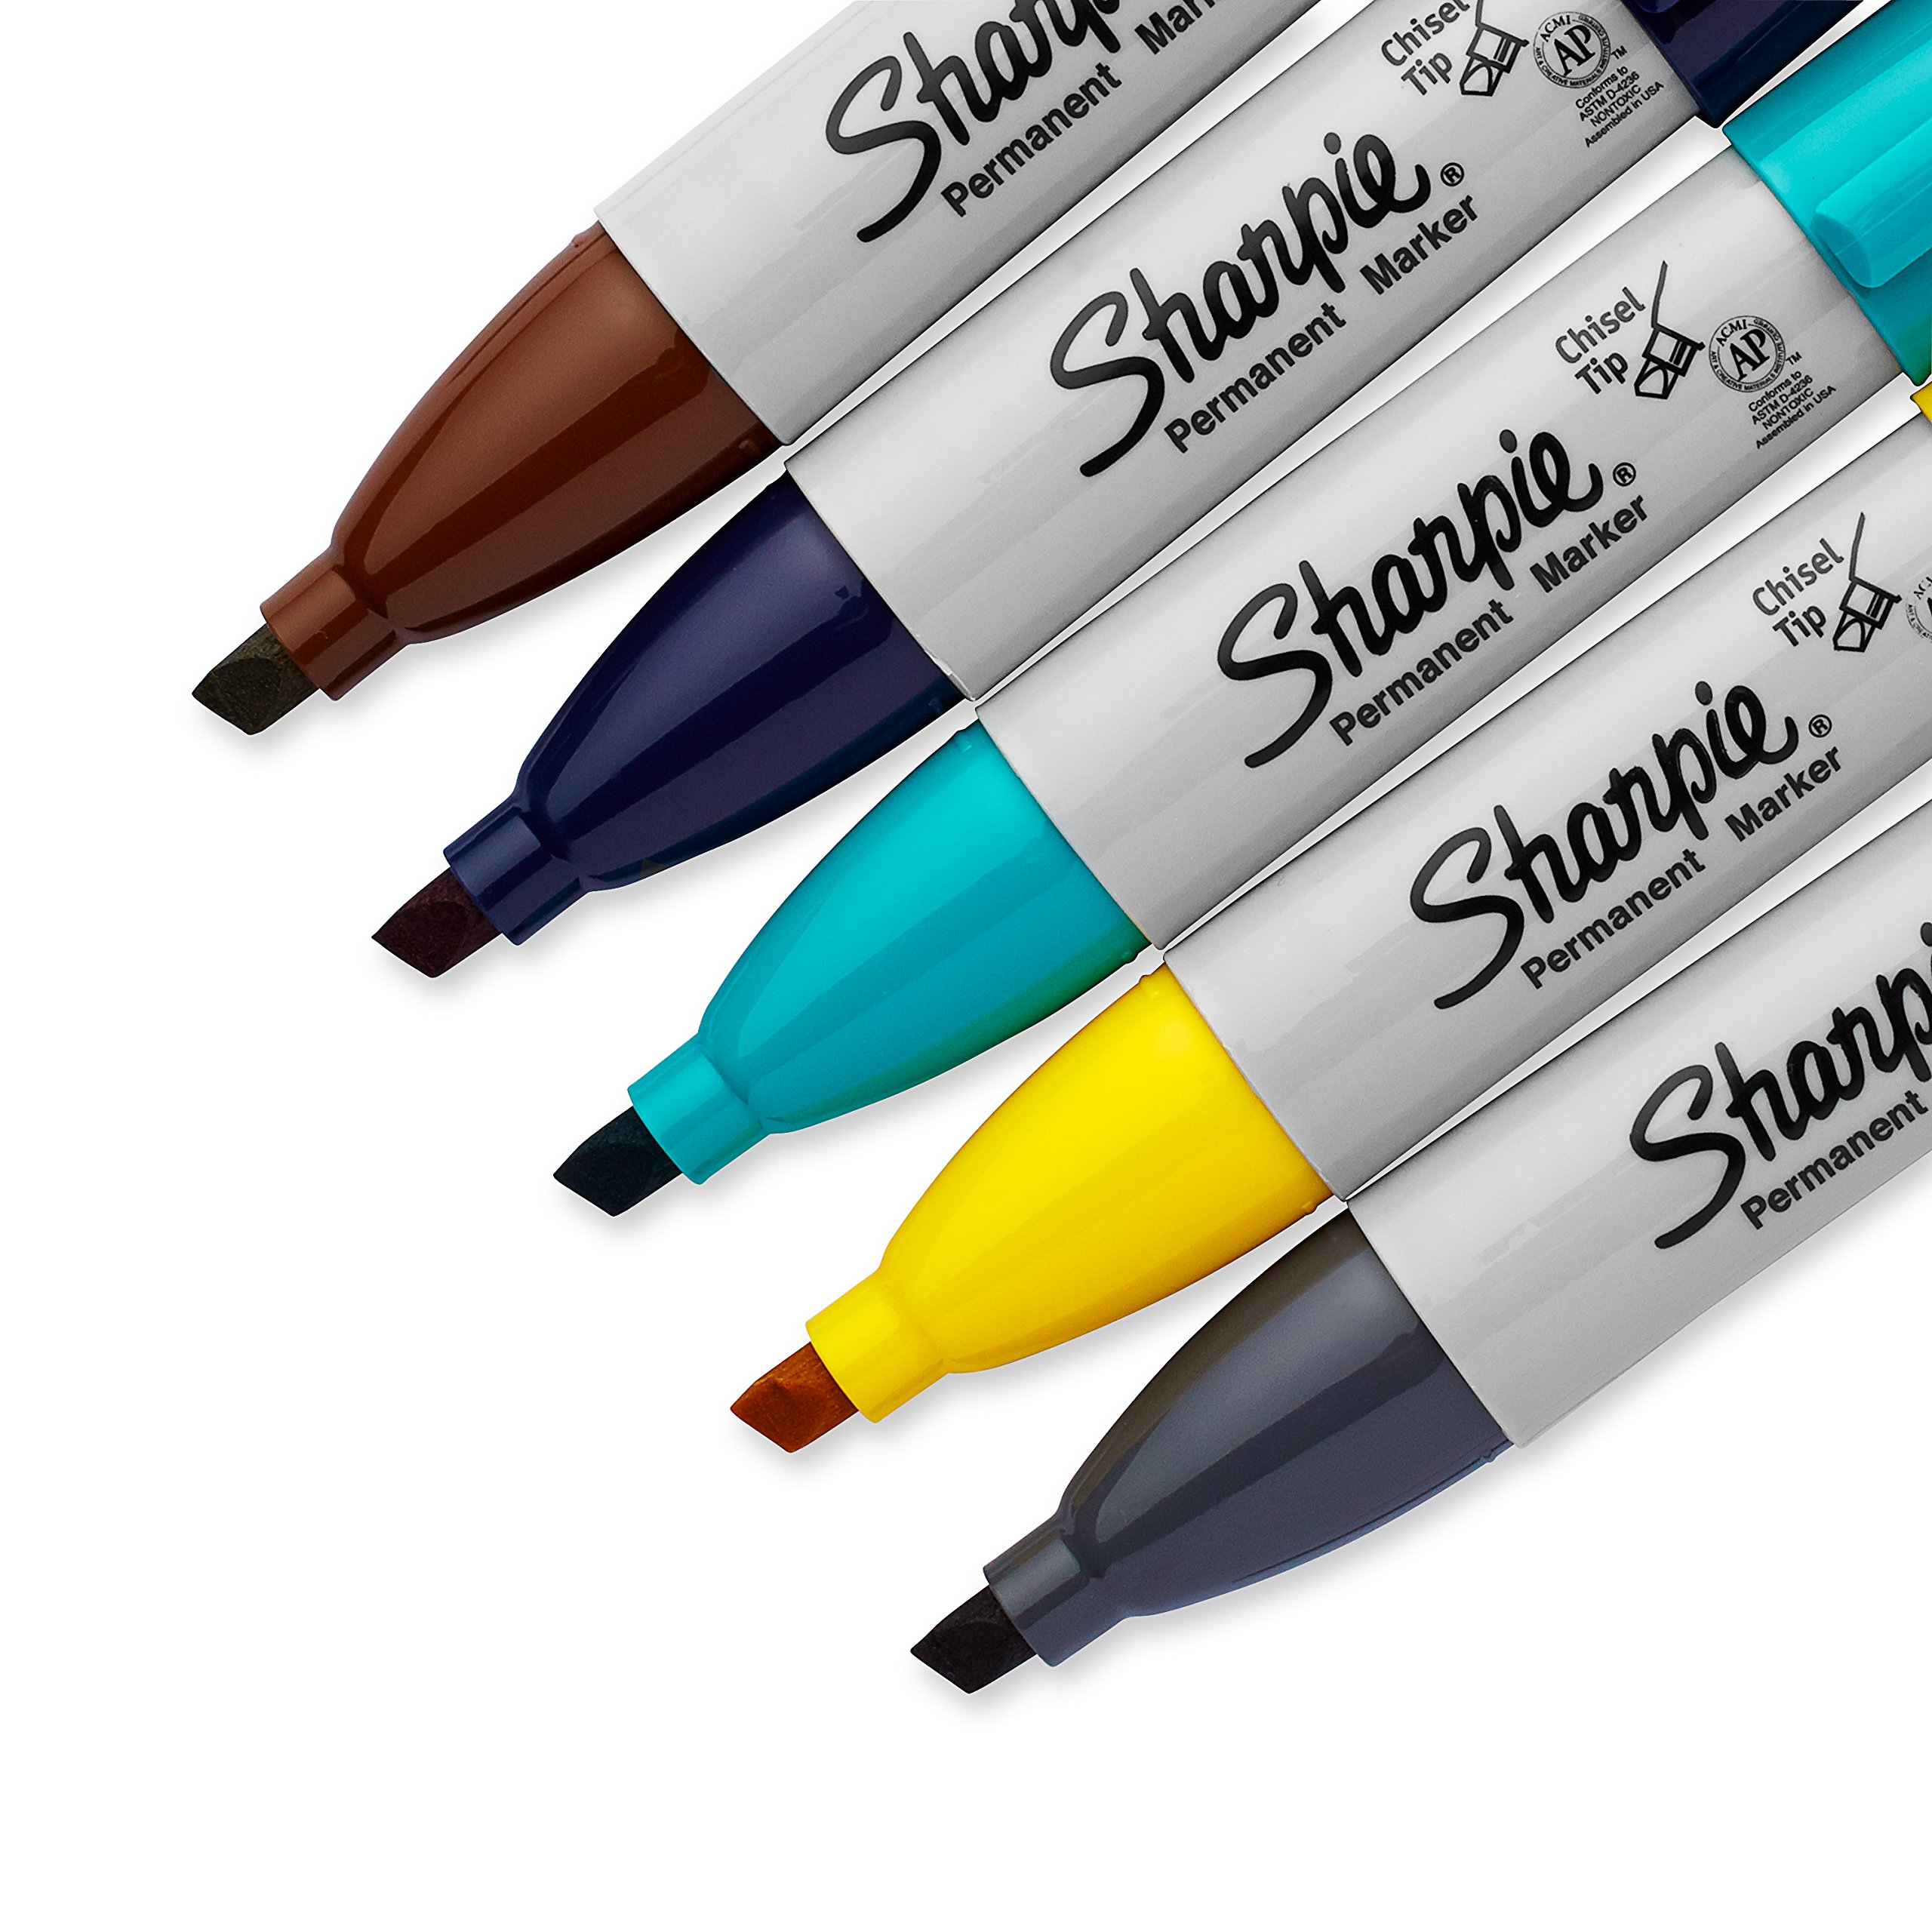 Sharpie Permanent Markers, Broad, Chisel Tip, 5-Pack, Assorted 2015 Colors (1927321) by Sharpie (Image #4)